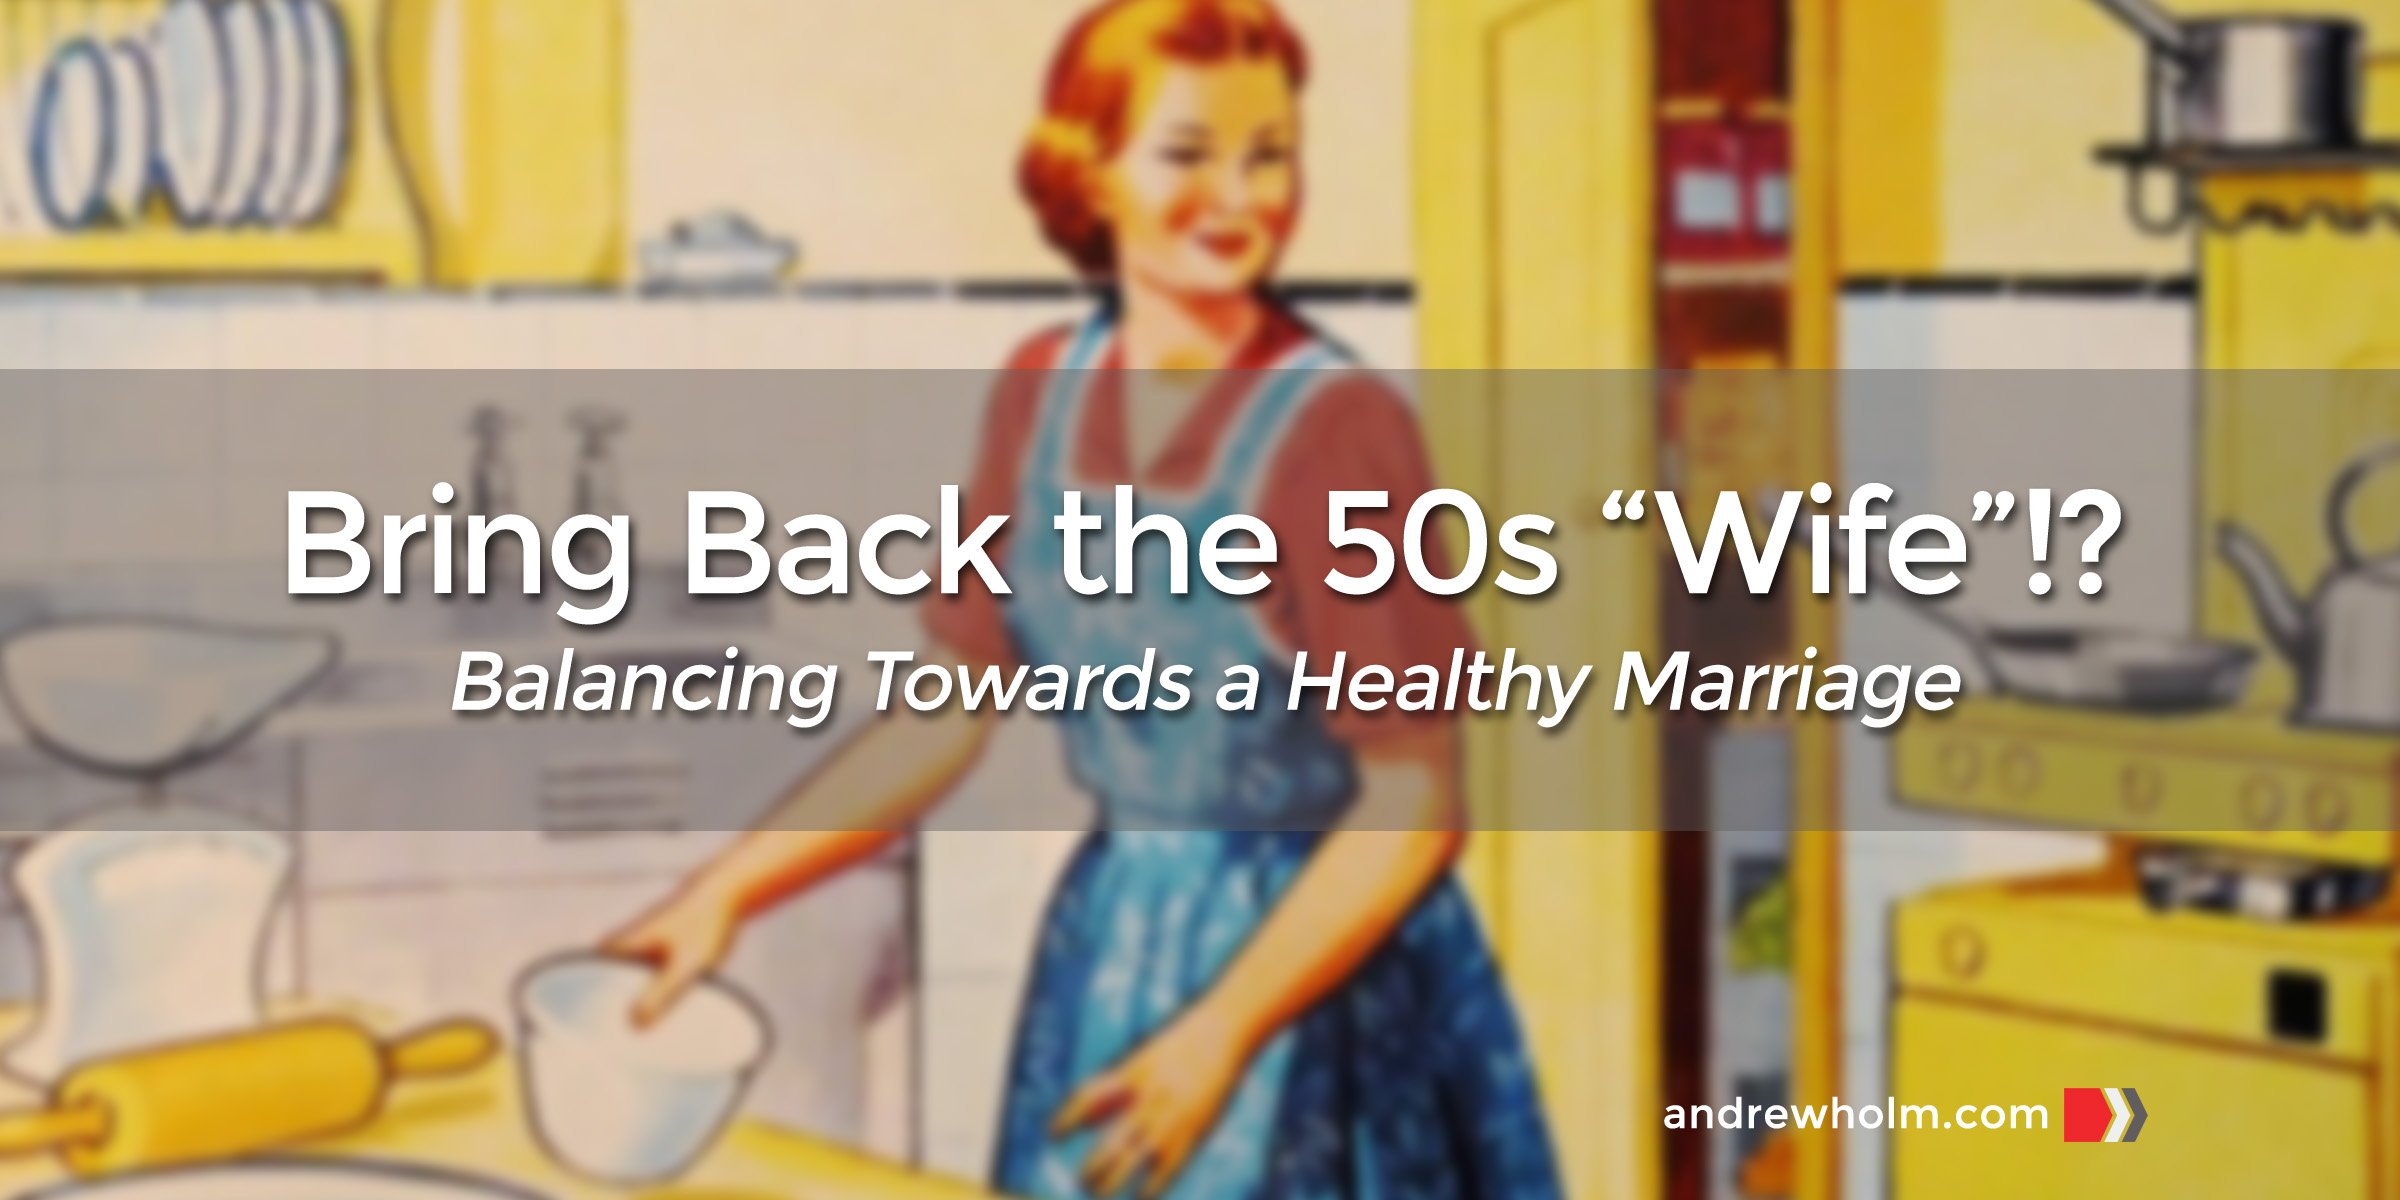 "Bring Back the 50s ""Wife""!?"